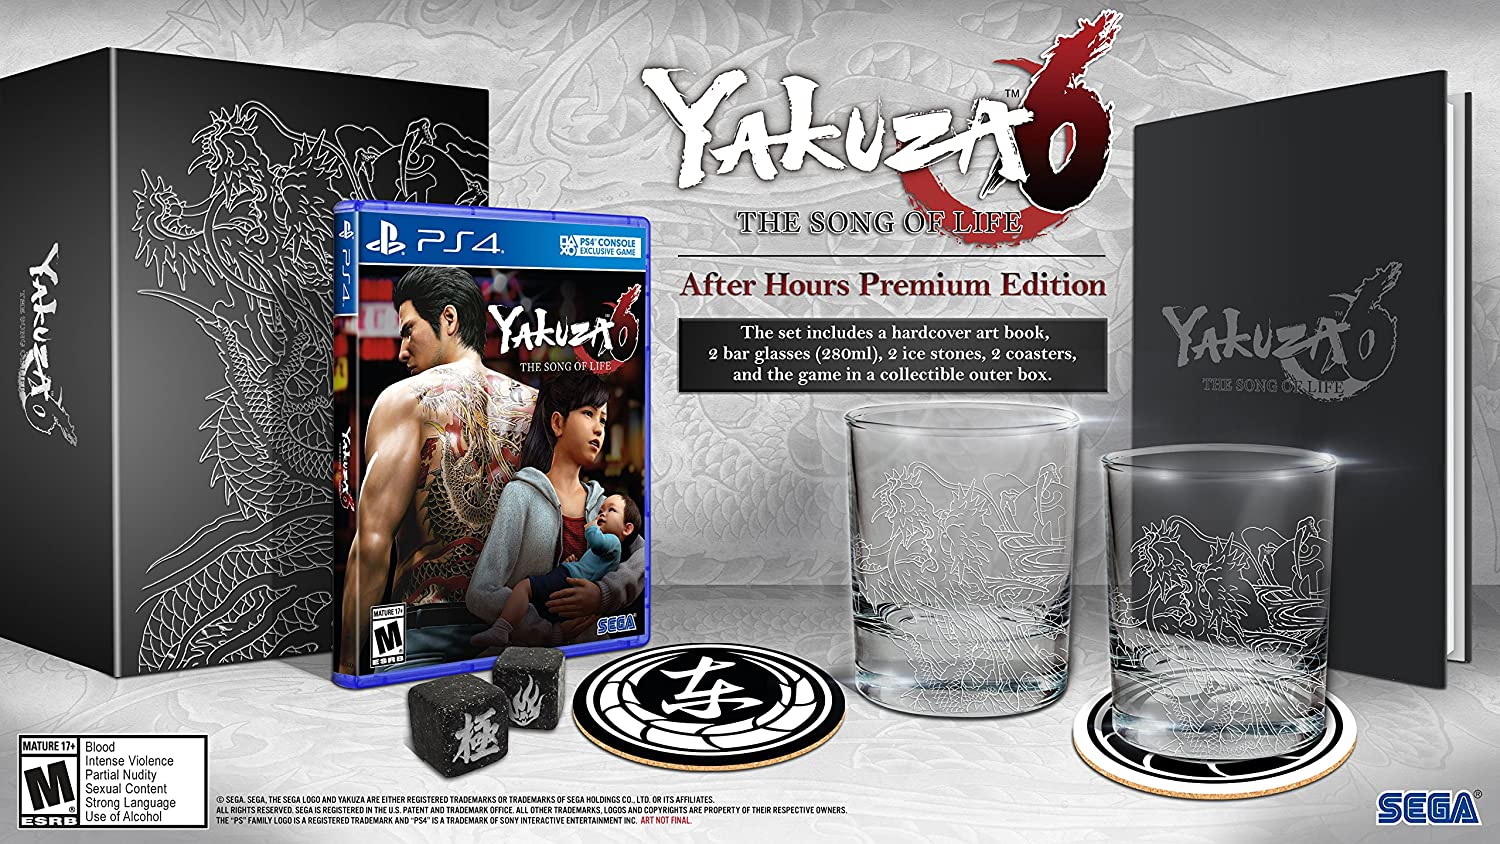 Yakuza 6: Limited price sale The Song of Life Superlatite Premium After - PlayS Edition Hours